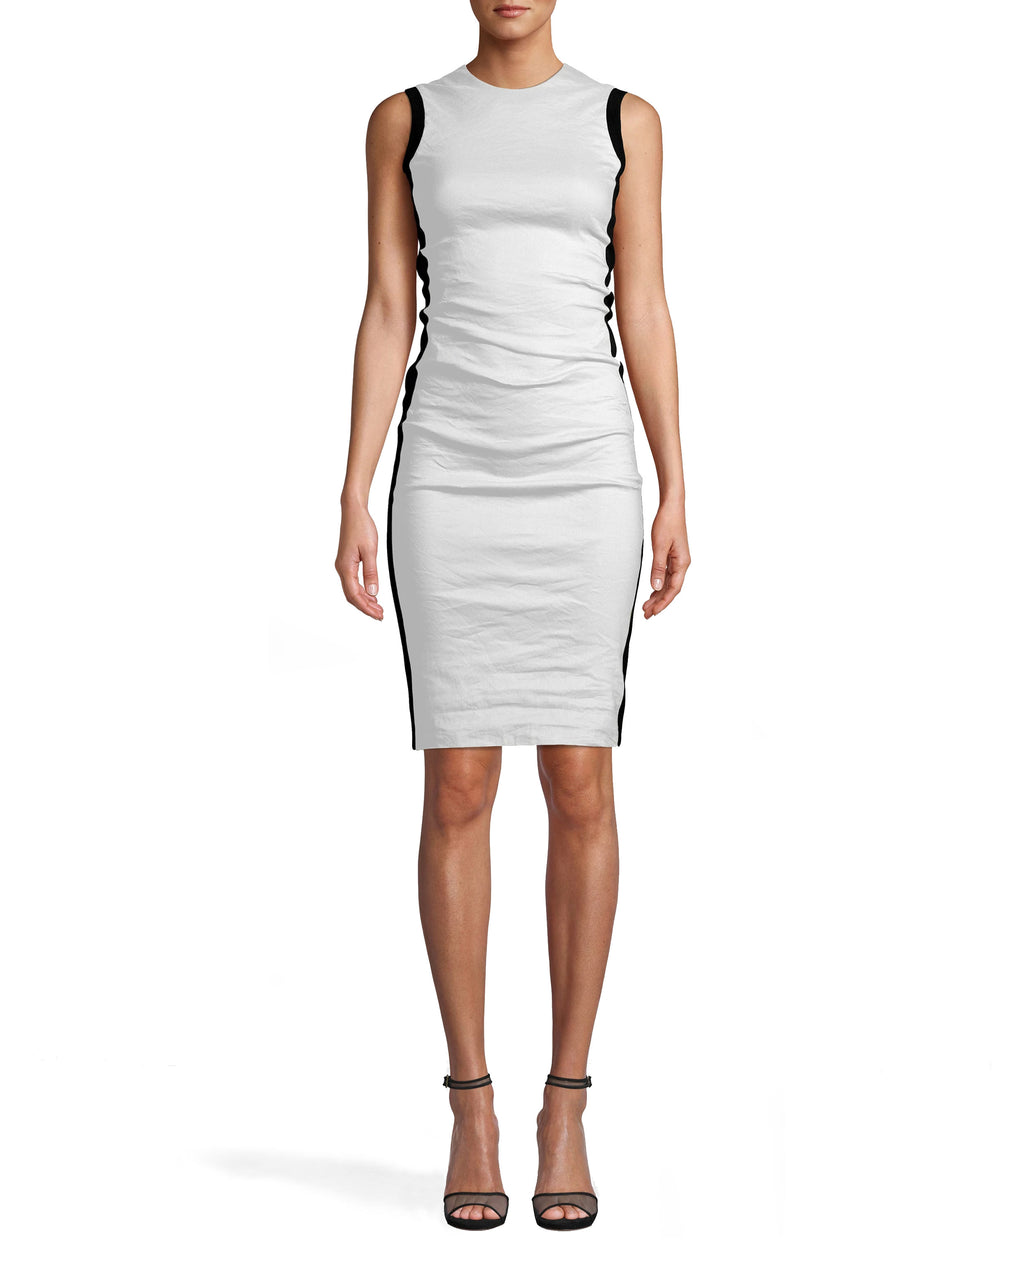 CA10267 - COTTON METAL AND PONTE COMBO DRESS - dresses - short - THIS HIGH NECK STYLE FITS FLAWLESSLY INTO YOUR CLOSET. COTTON METAL AND PONTE FABRICS MAKE THIS BODYCON PIECE ULTRA COMFORTABLE AND SKIMMING. DRESS IT UP OR DOWN DEPENDING ON THE OCCASION. CONCEALED ZIPPER FOR CLOSURE.